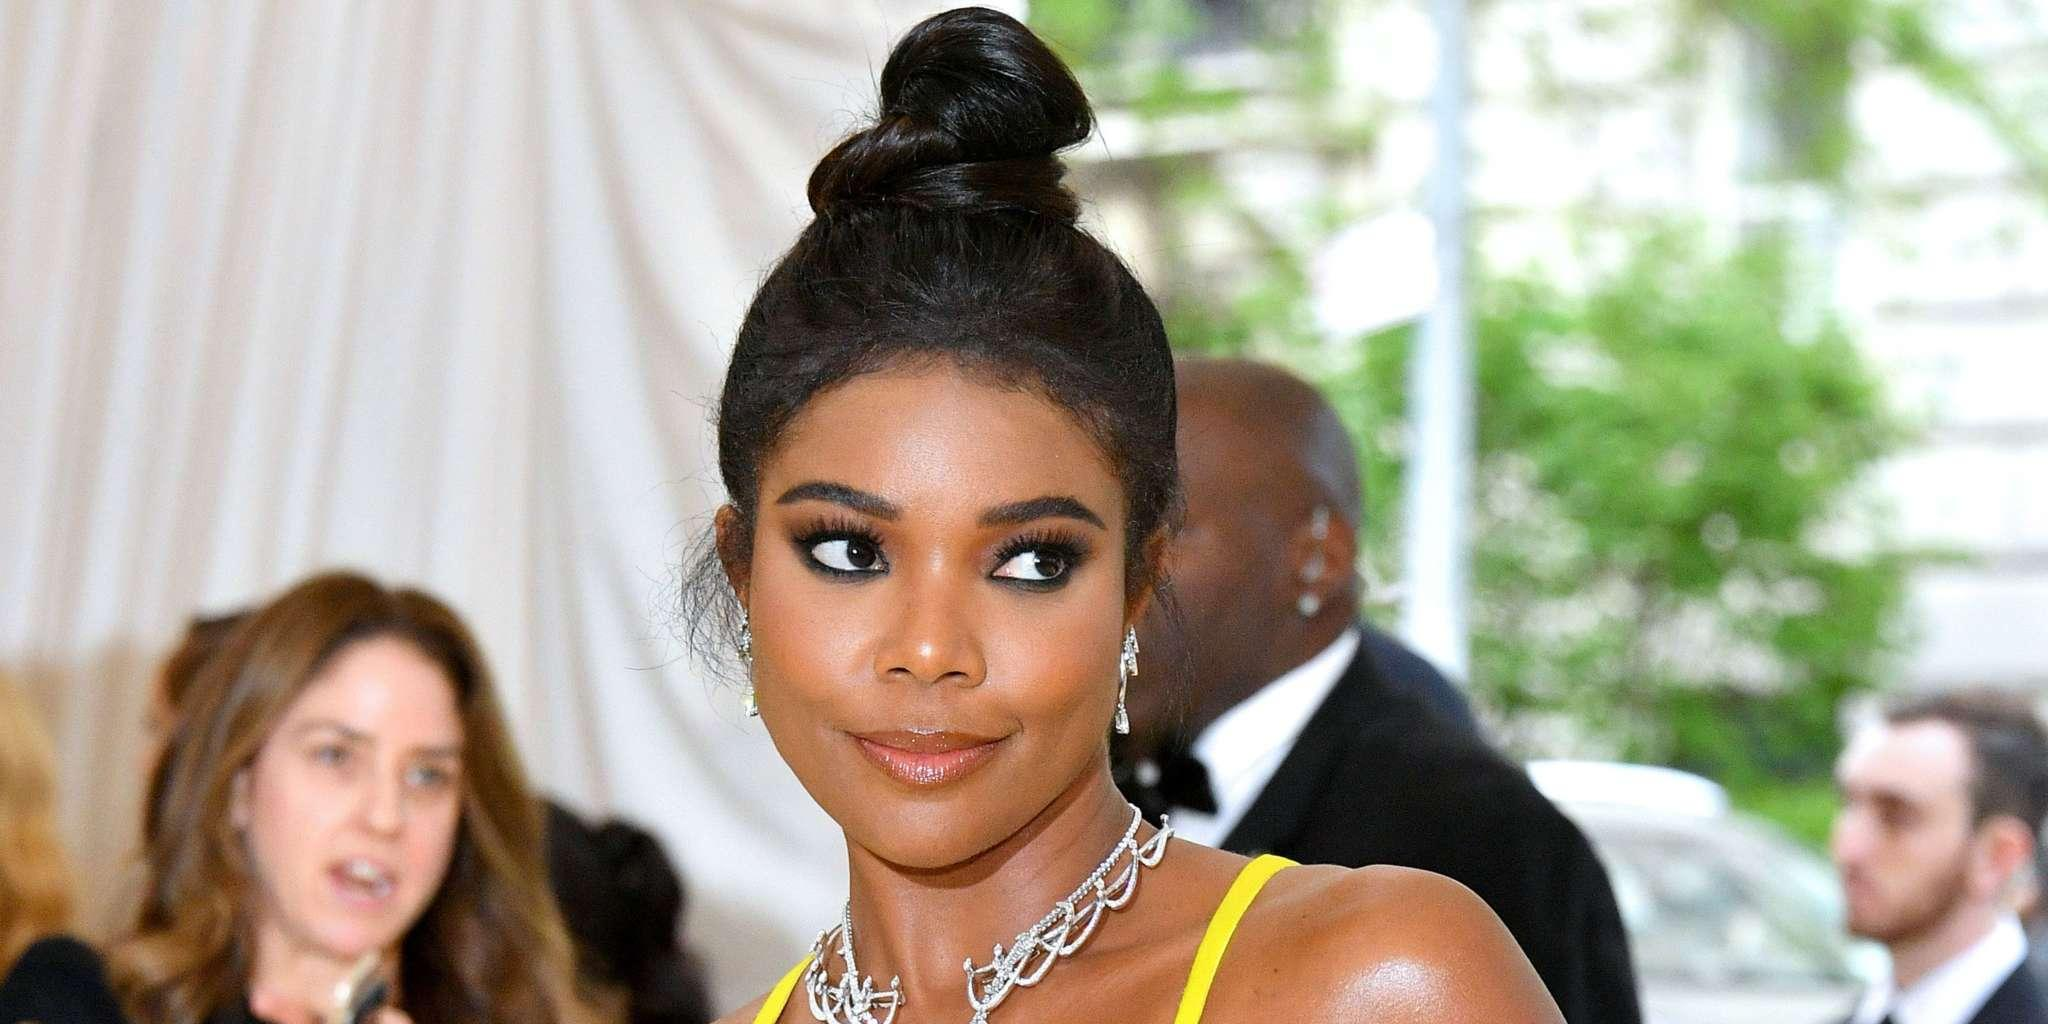 Gabrielle Union's Latest Photo Of Baby Kaavia Has Fans Smiling - The Mom Sends A Strong Message